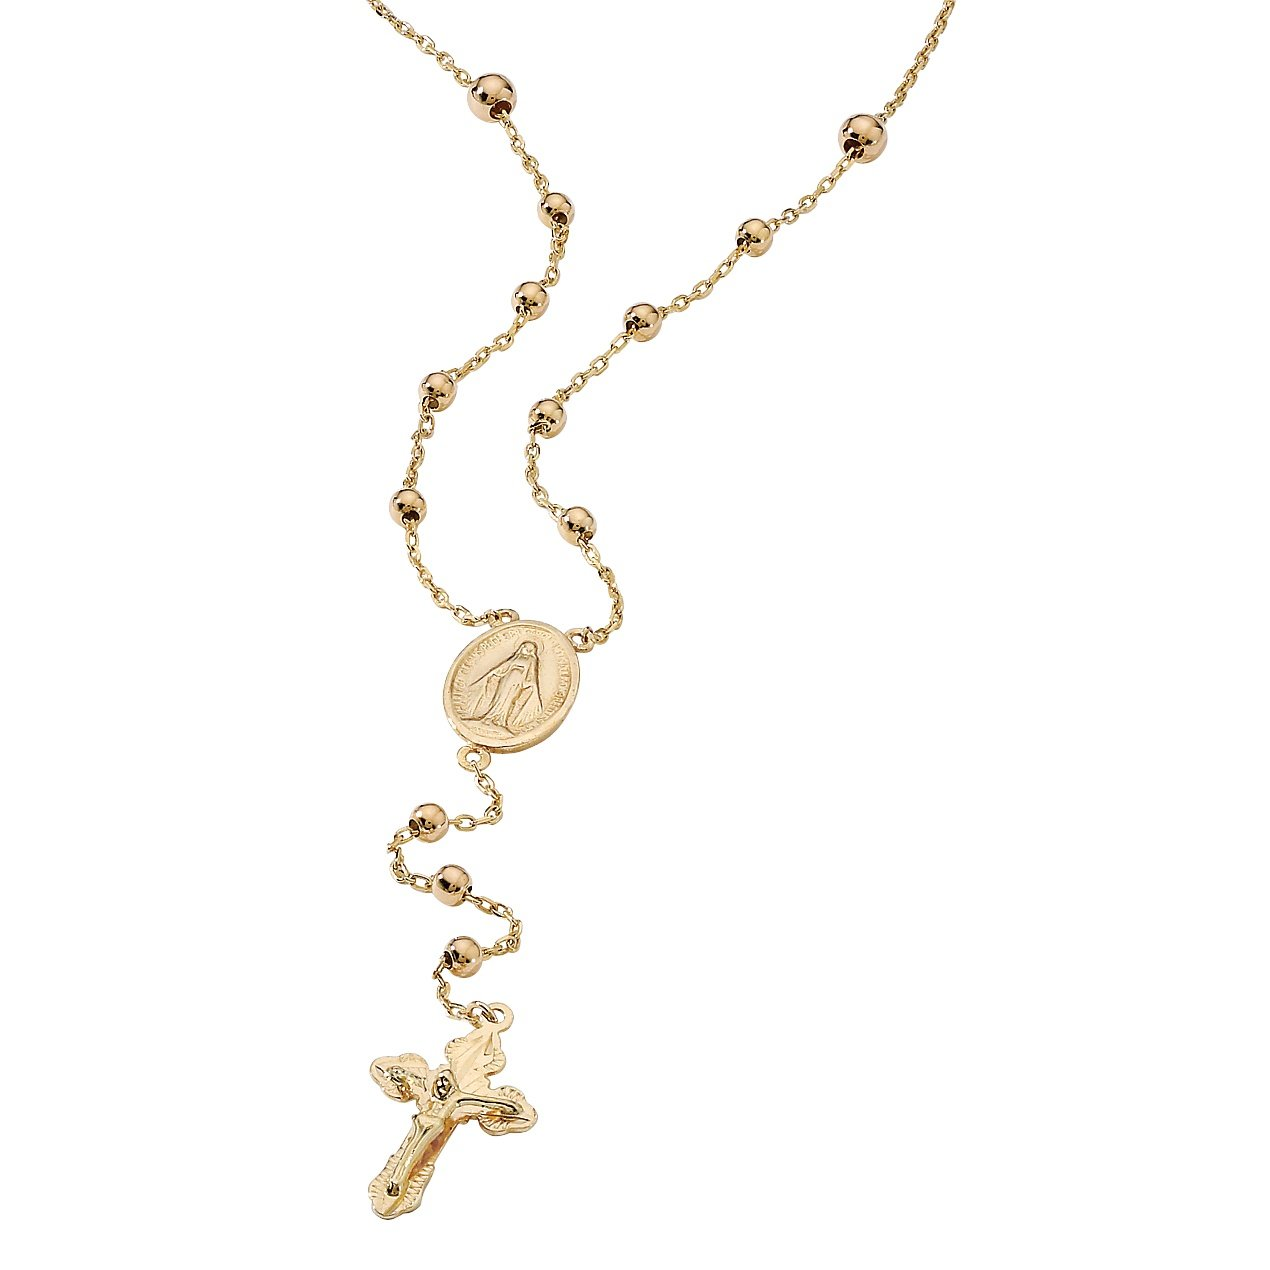 18K Yellow Gold over Sterling Silver Style Rosary Necklace (3mm), Lobster Claw Clasp, 17 inches by Palm Beach Jewelry